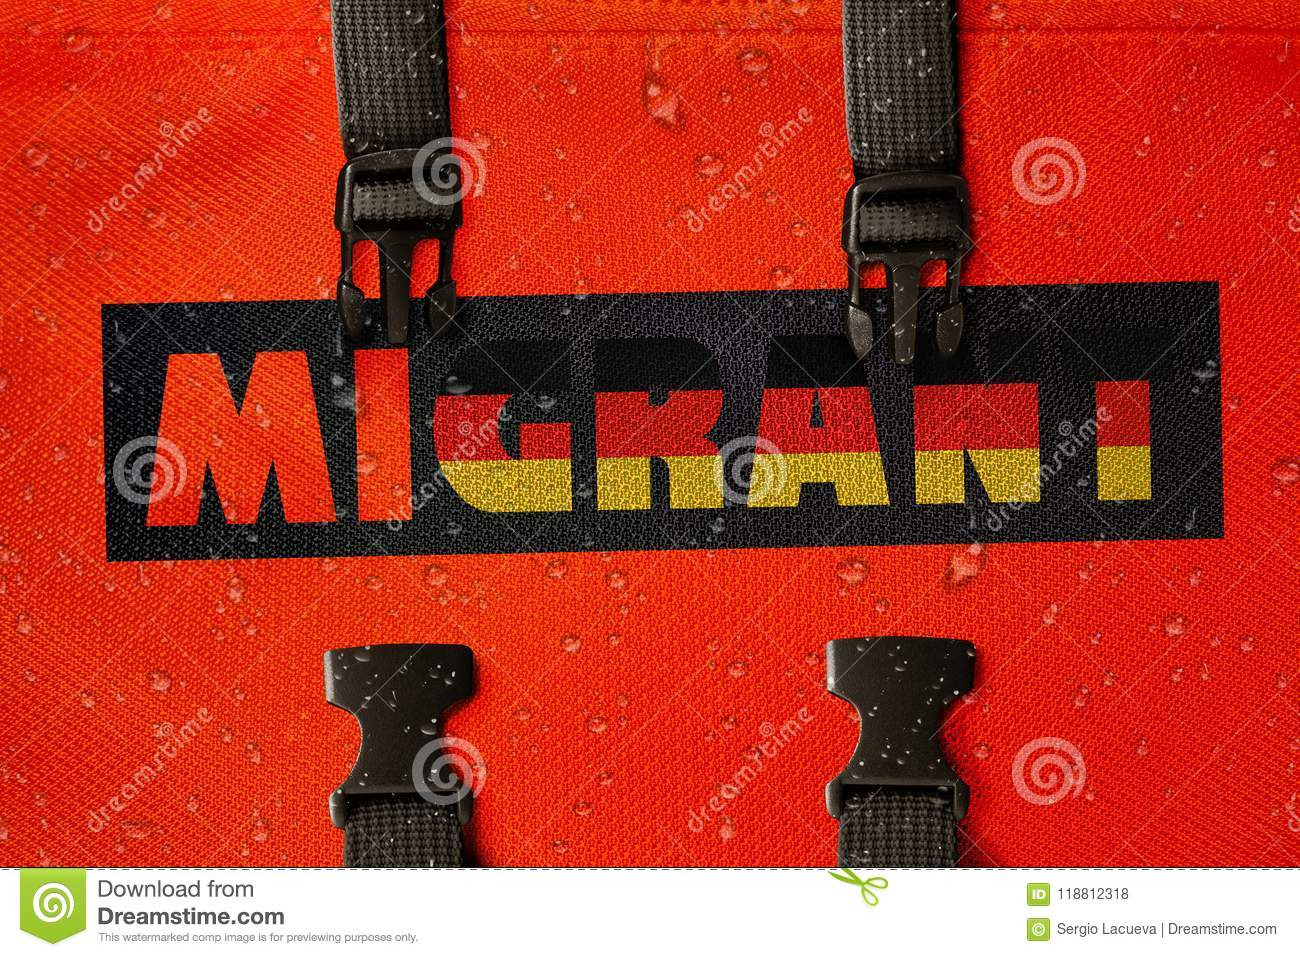 3D rendered idea for migrants crossing the Mediterranean and gaining access into Germany.